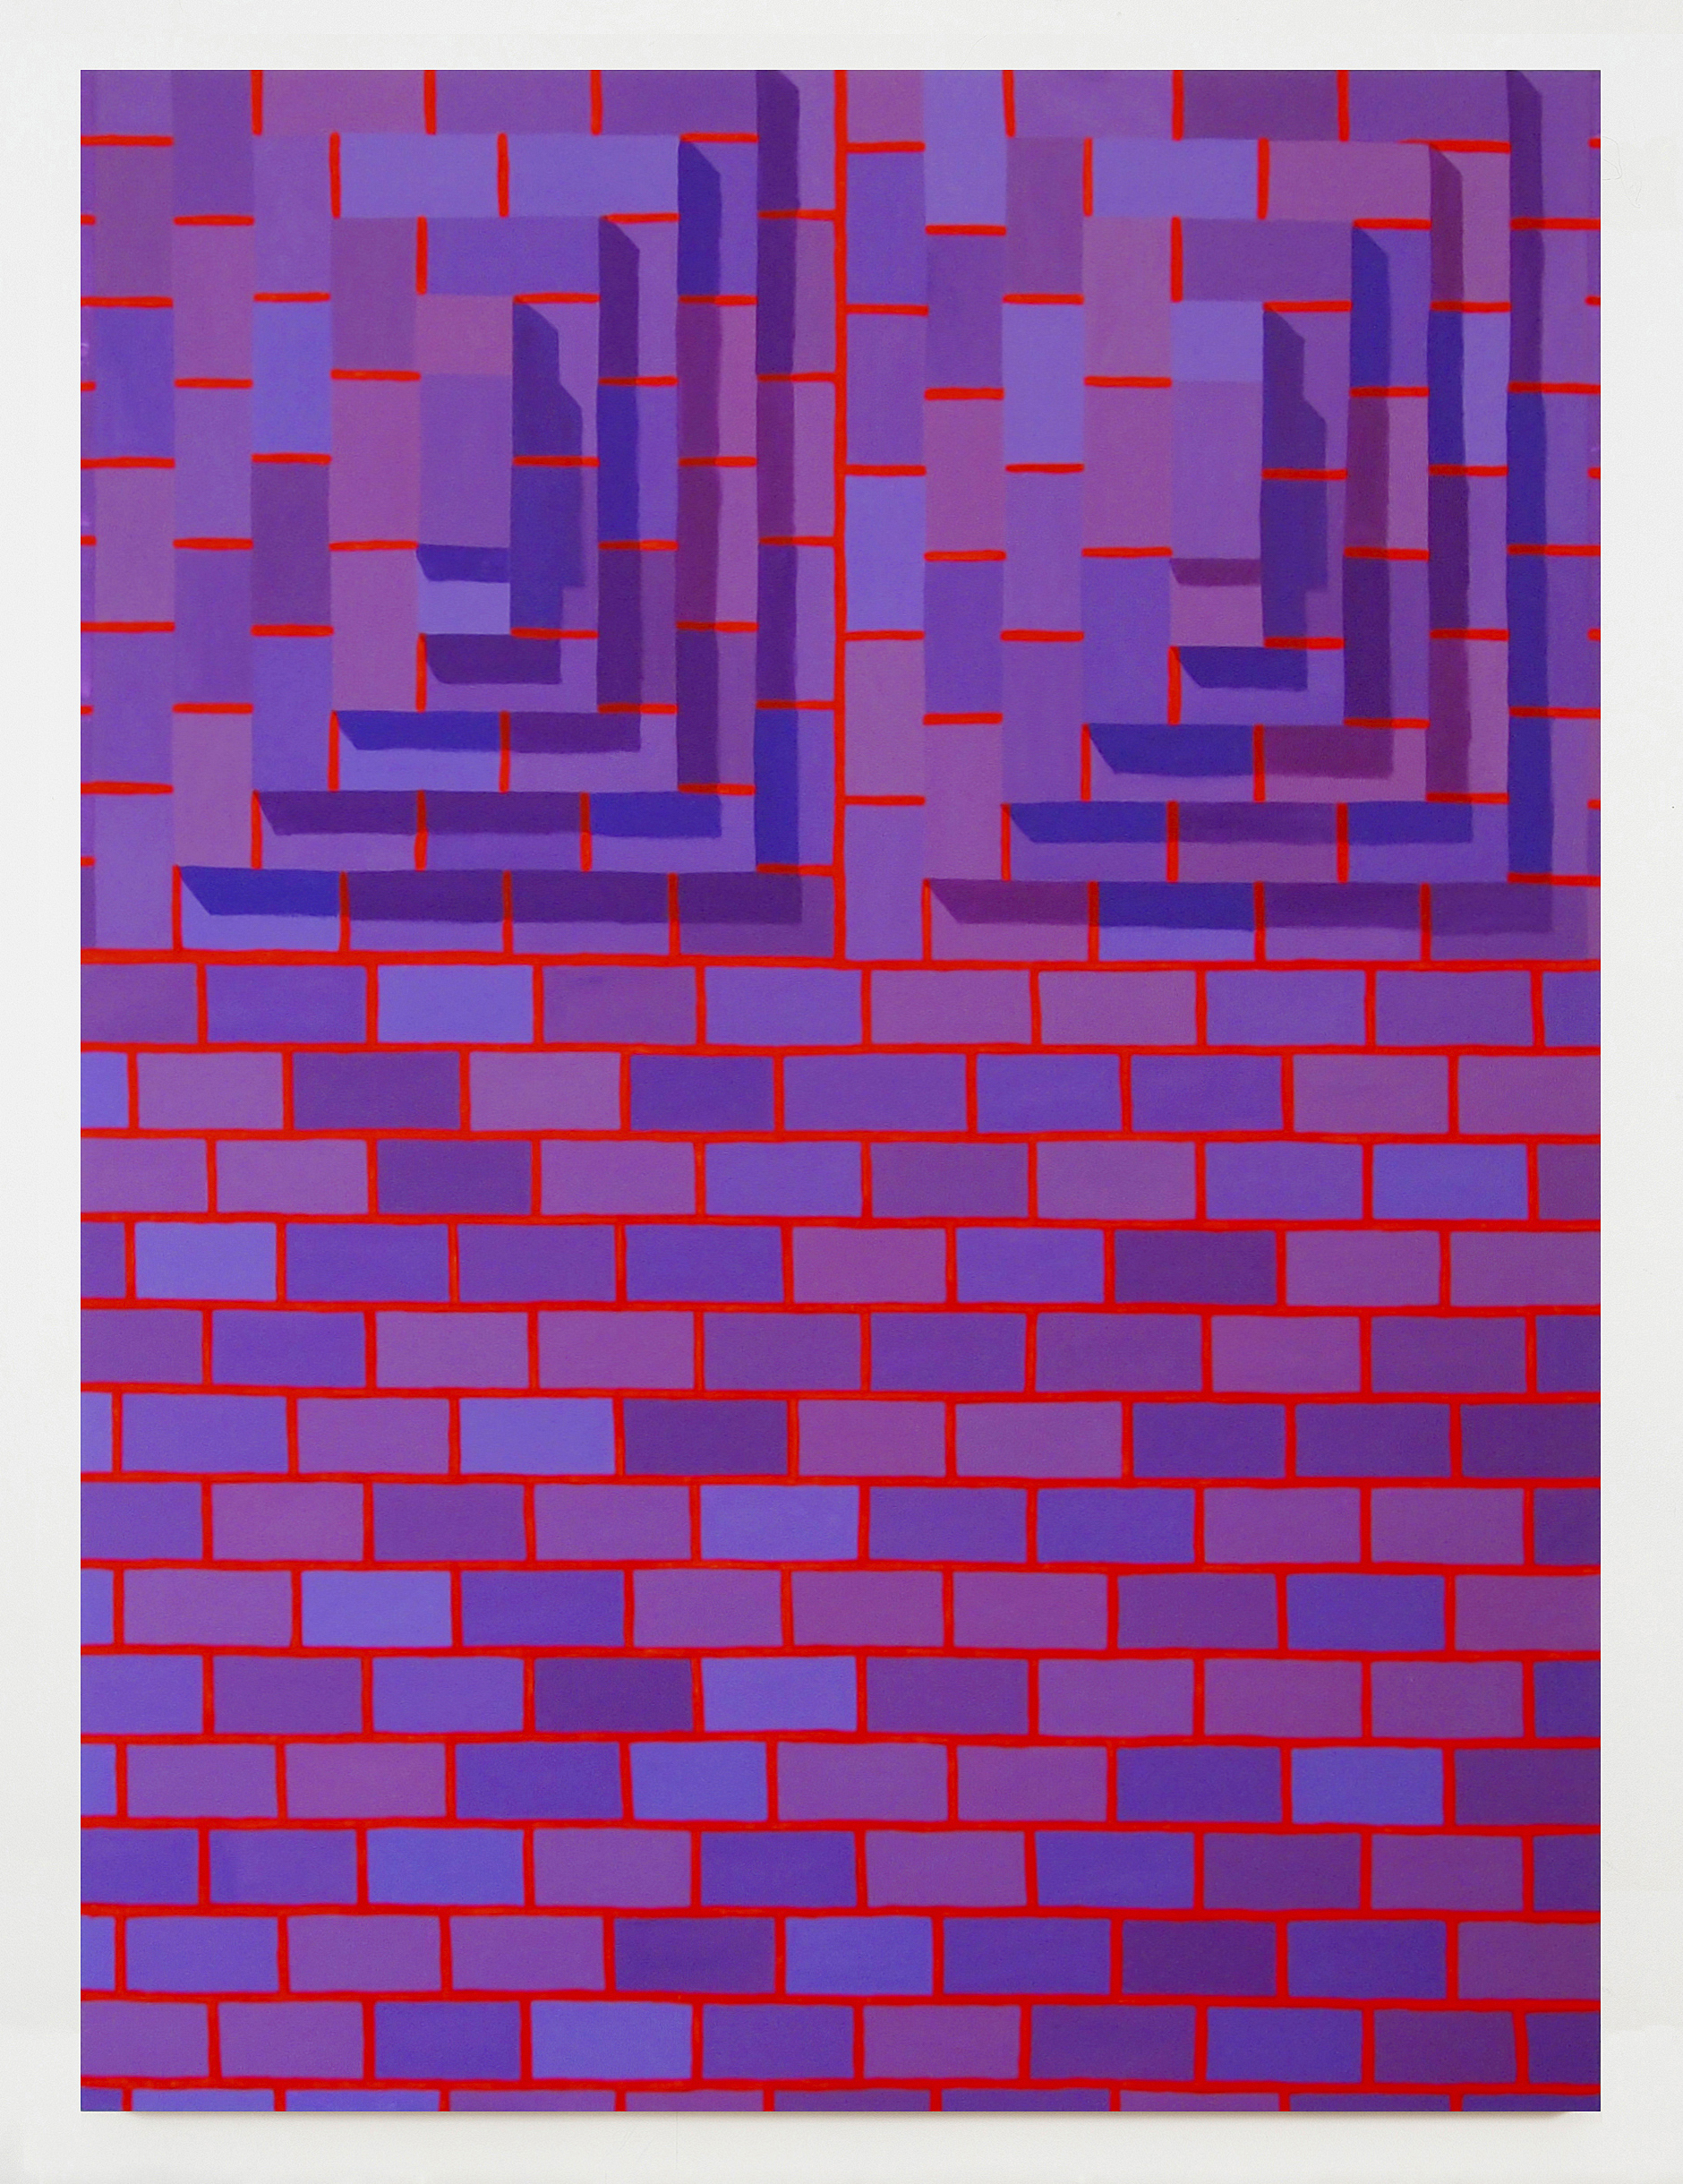 Corydon Cowansage, Stack 11, 2017, acrylic on canvas, 78 x 58 inches